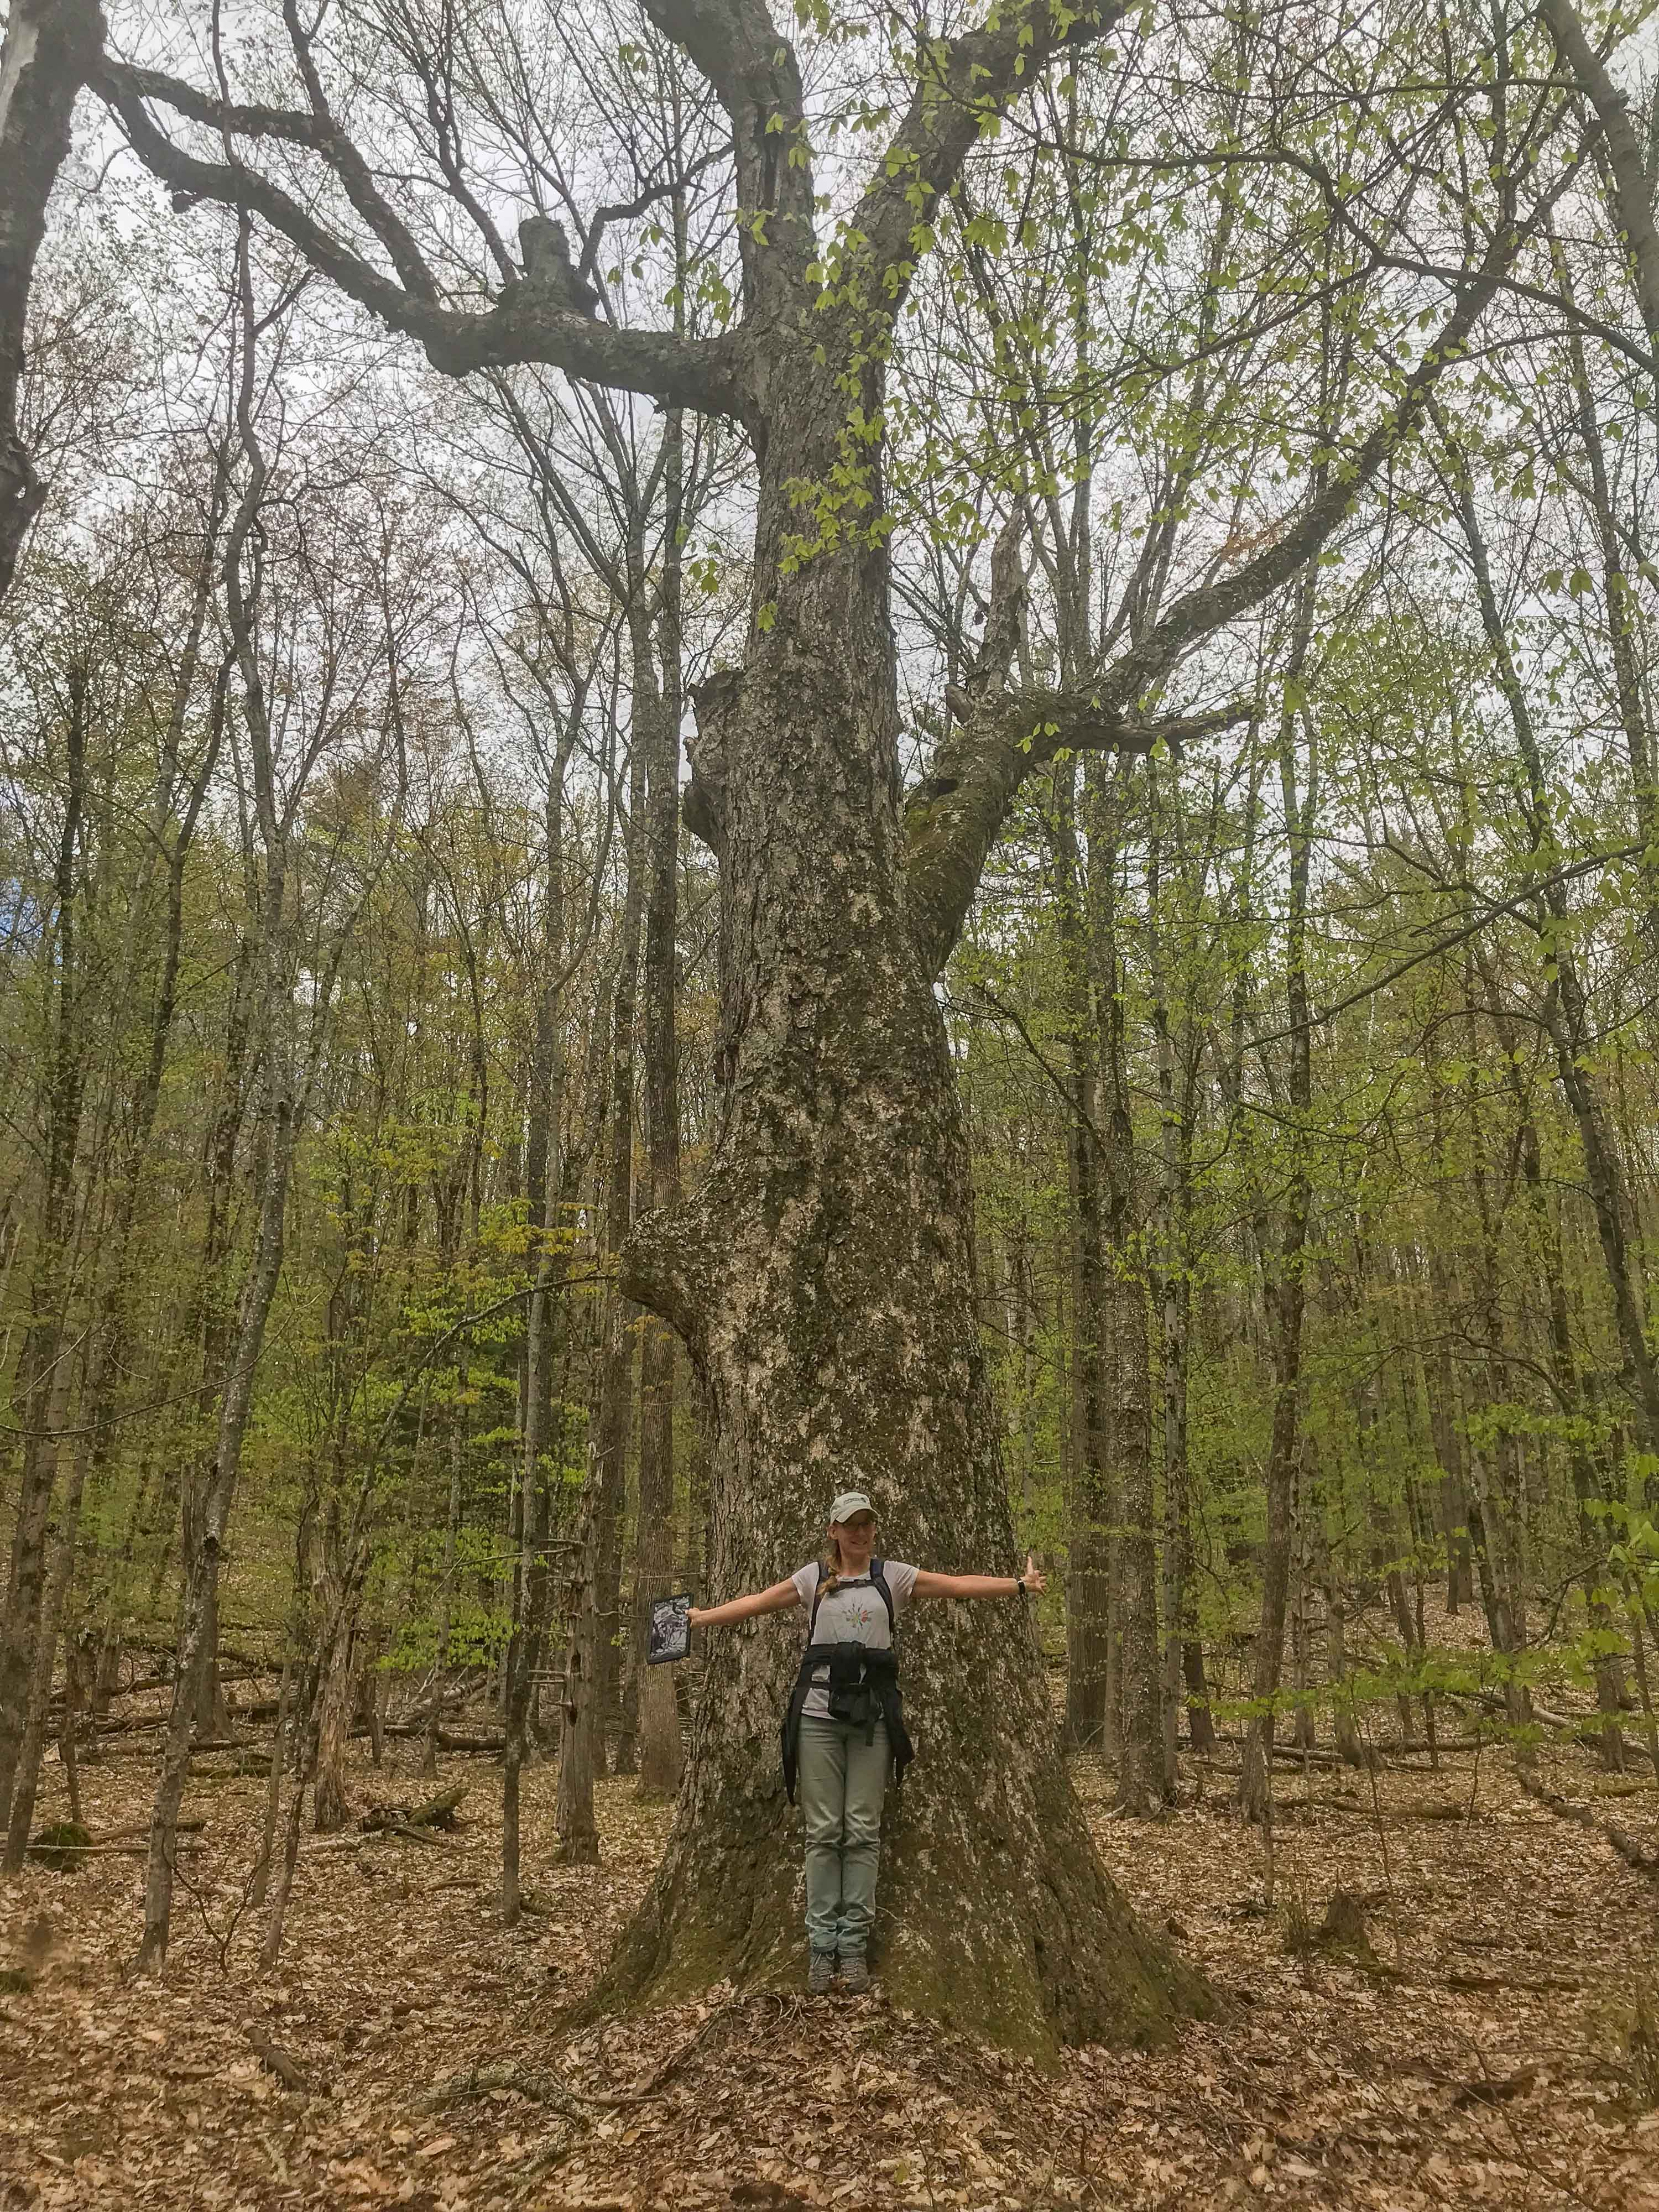 A woman stands at the base of a big tree, extending her arms. Her wingspan is just about the diameter of the tree. Smaller trees with bright green foliage surround the area.